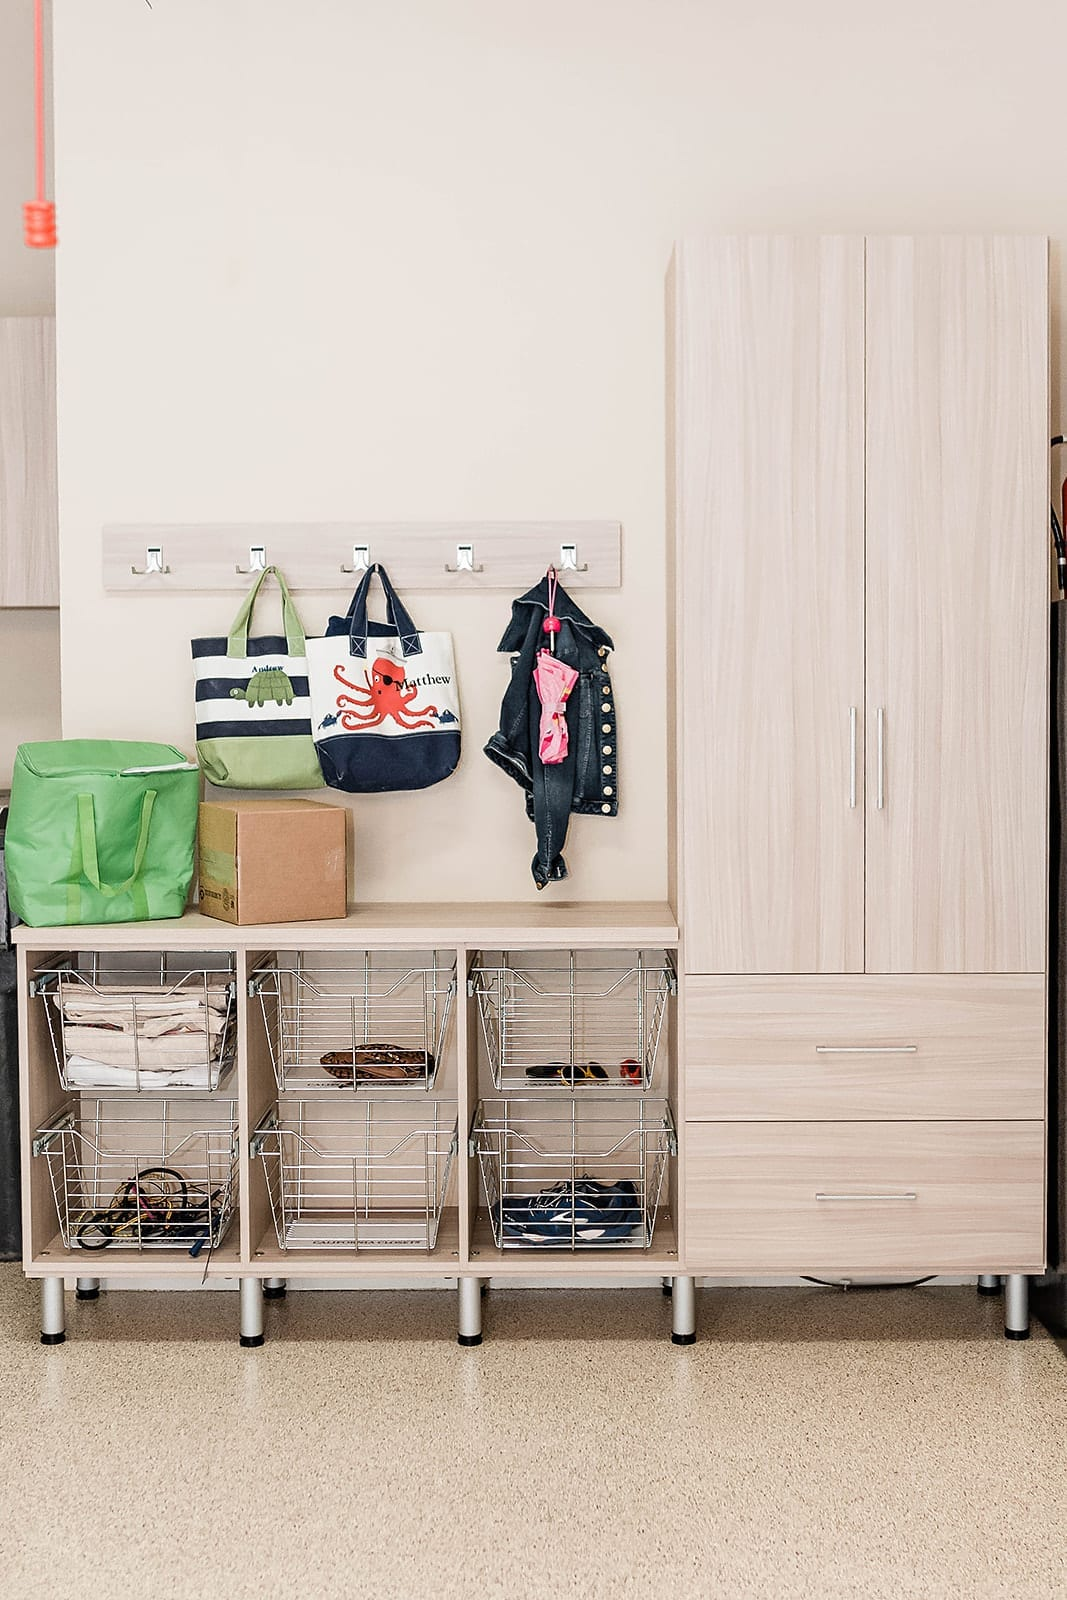 Garage Cabinet Ideas - adding a counter top and baskets to keep things easy to find in the garage for kid stuff.